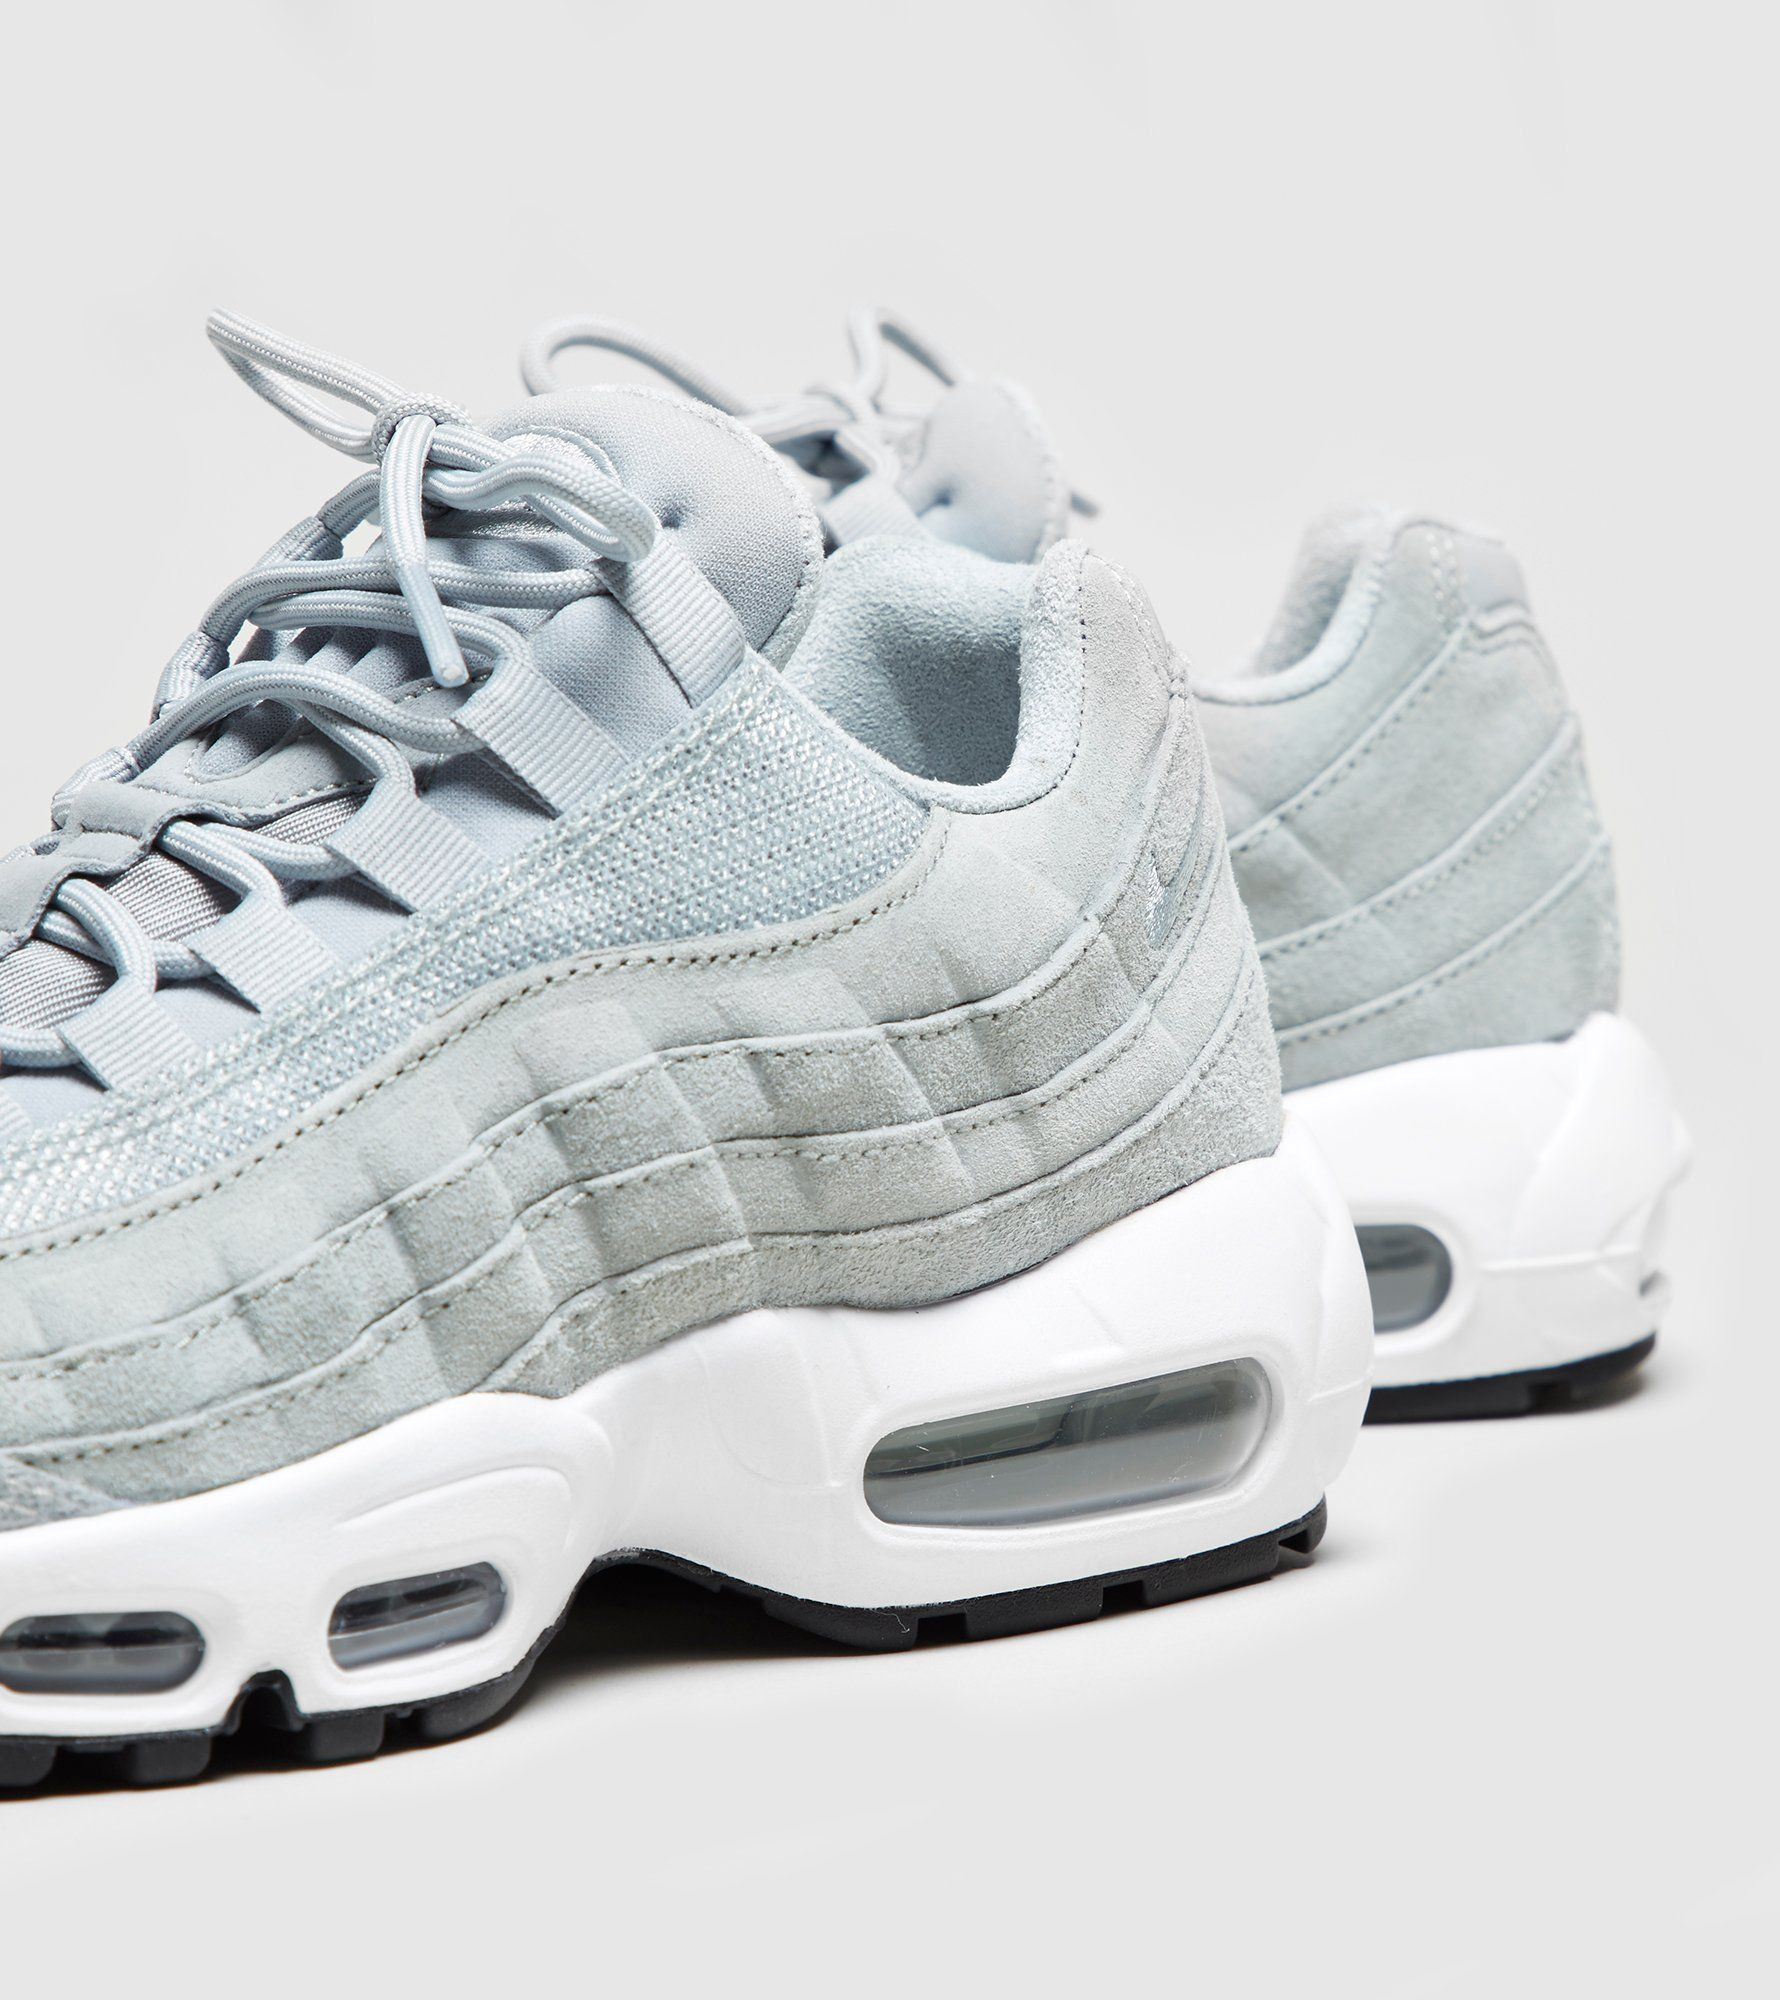 Nike Air Max 95 Premium Light Femme